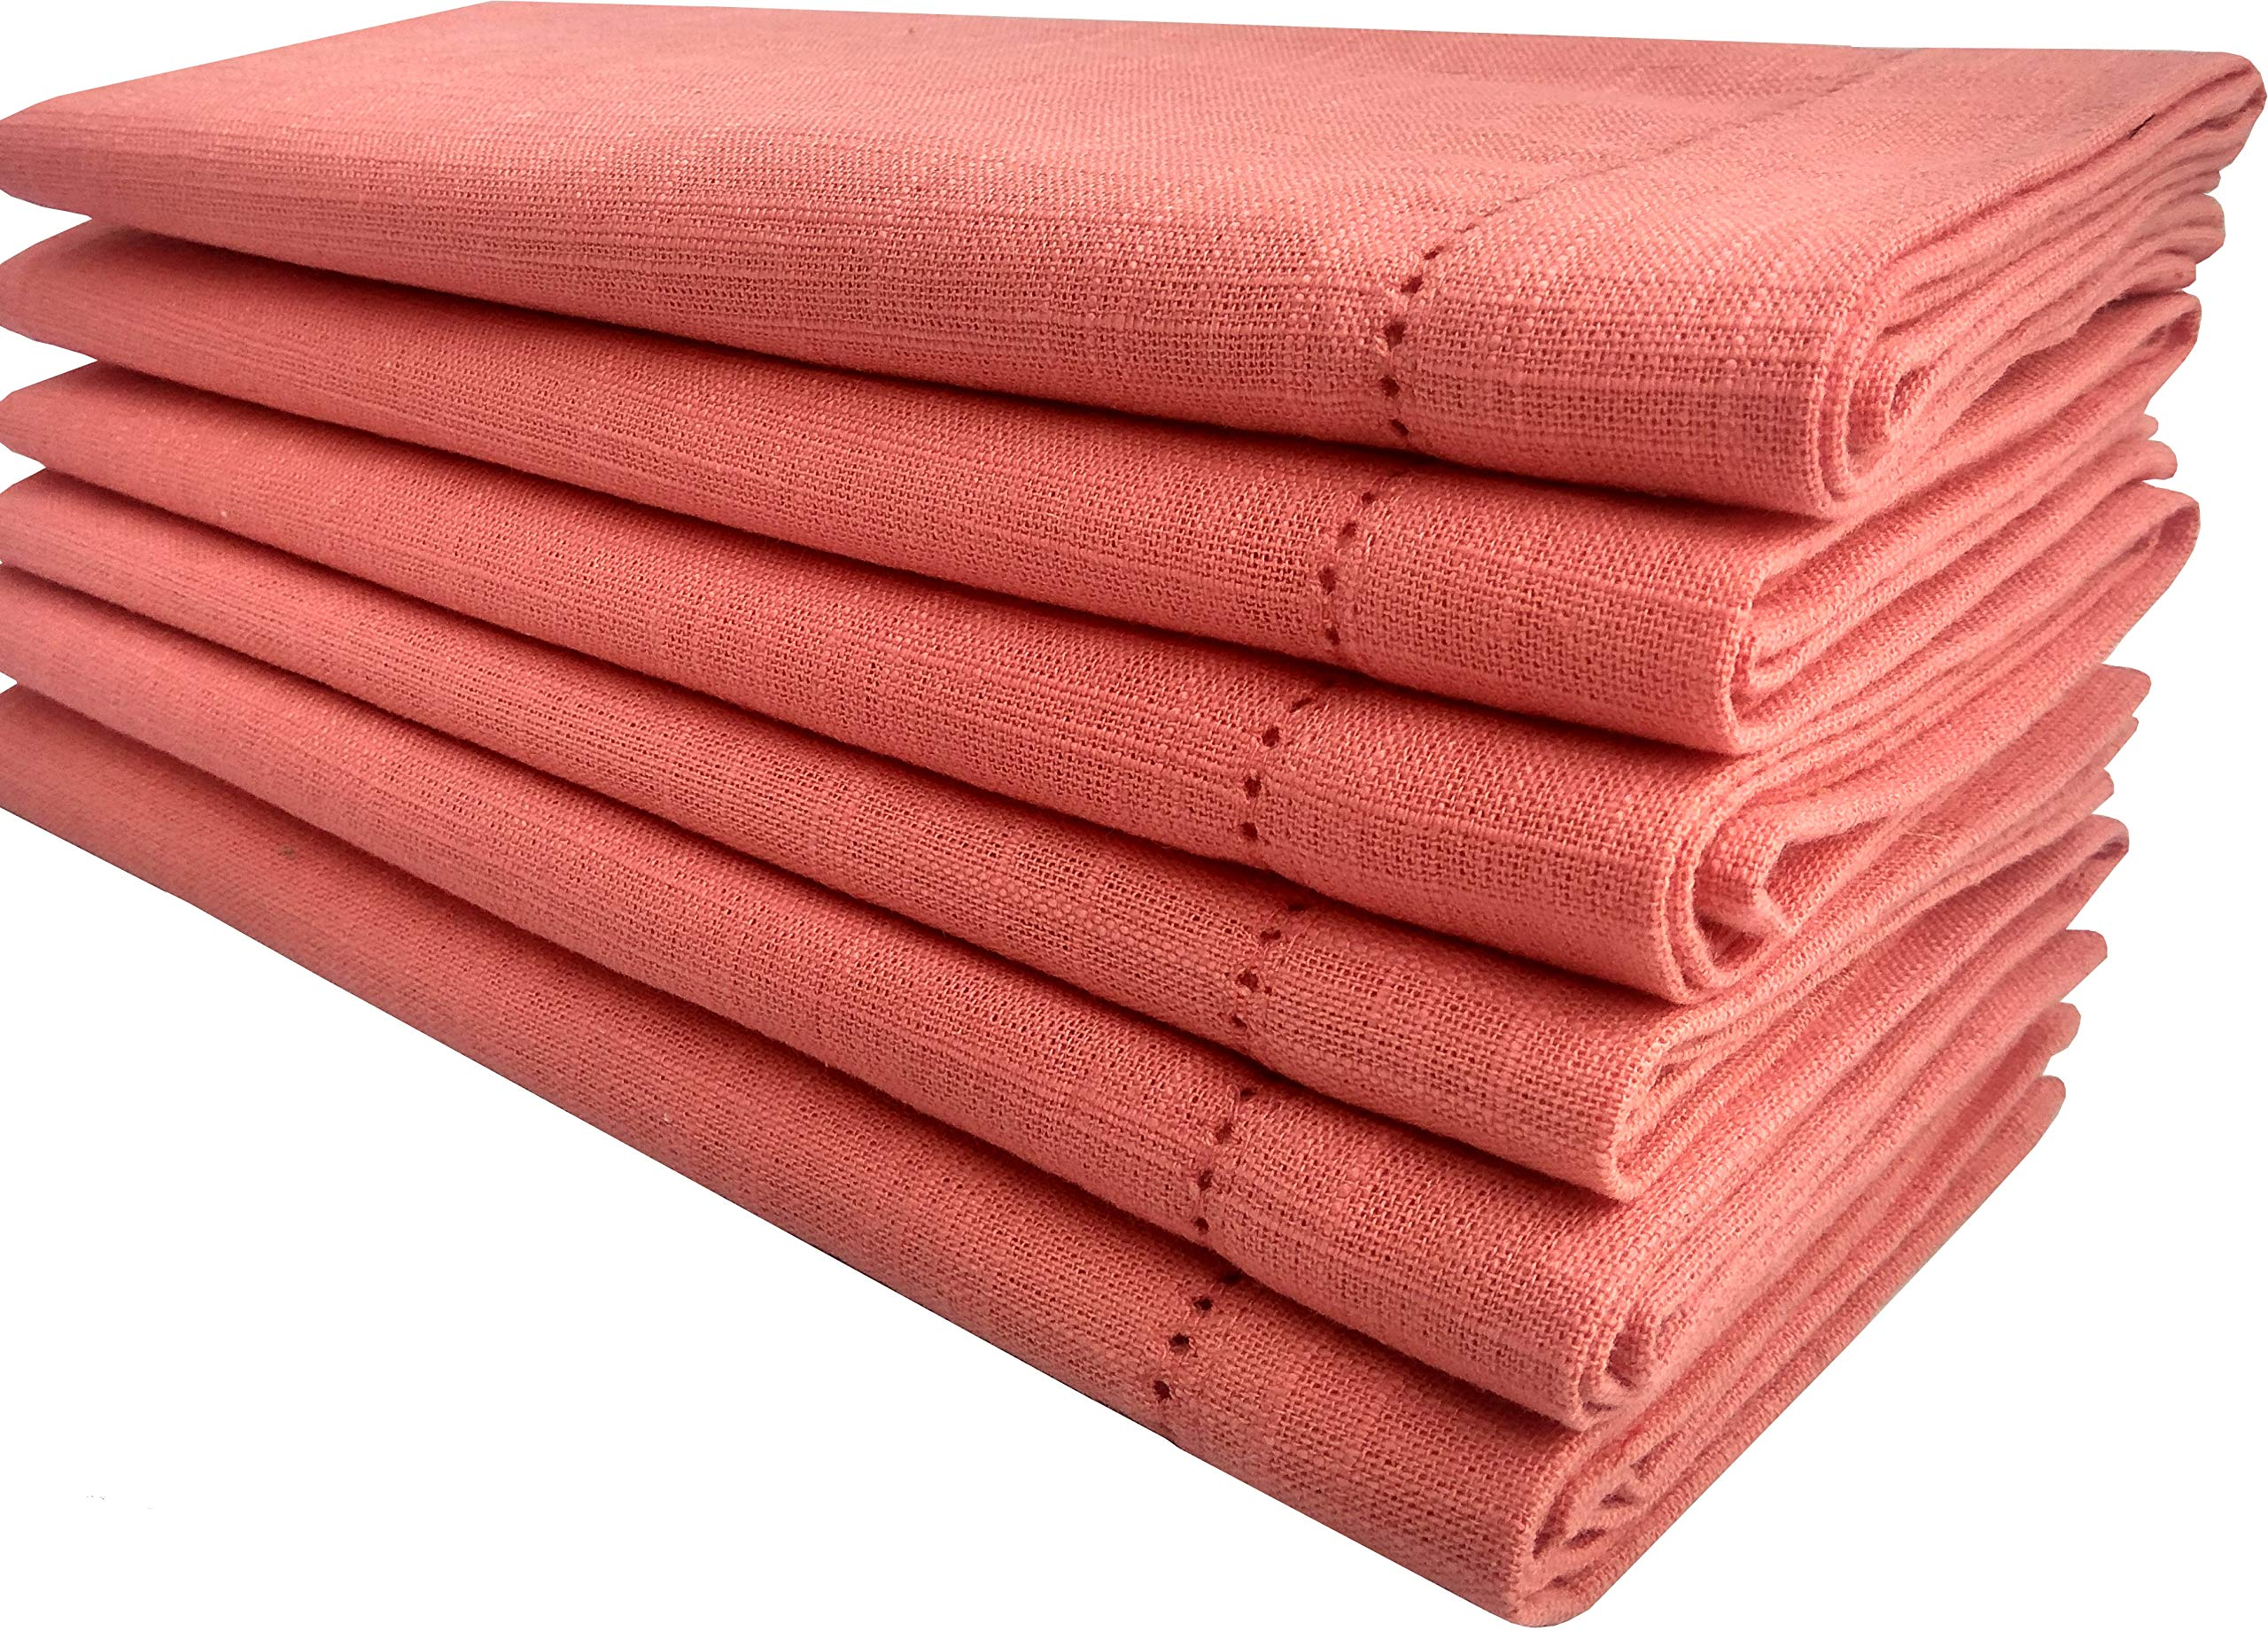 Linen Clubs Cloth Dinner Napkins in Cotton slub Fabric in Coral Color,18x18 Inch with Mitered Corner Finish & Hemstitched Detailing Offered (Set of 6 Pieces)